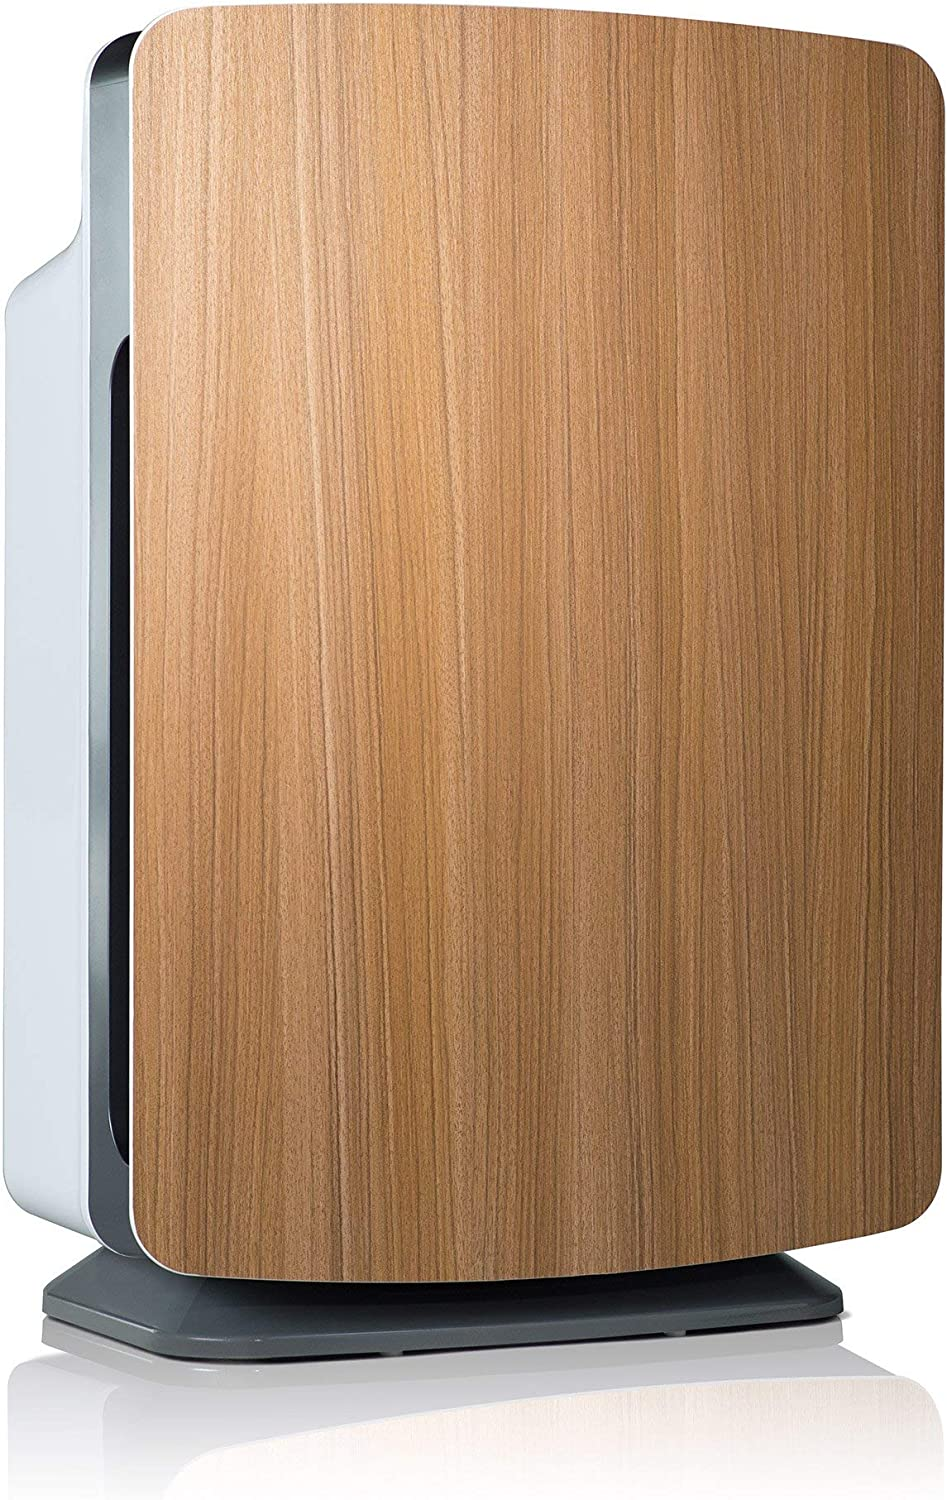 Alen BreatheSmart Classic Large Room Air Purifier, 1100 sqft. Big Coverage Area, HEPA Filter for Allergies, Pollen, Dust, Dander and Fur in Oak